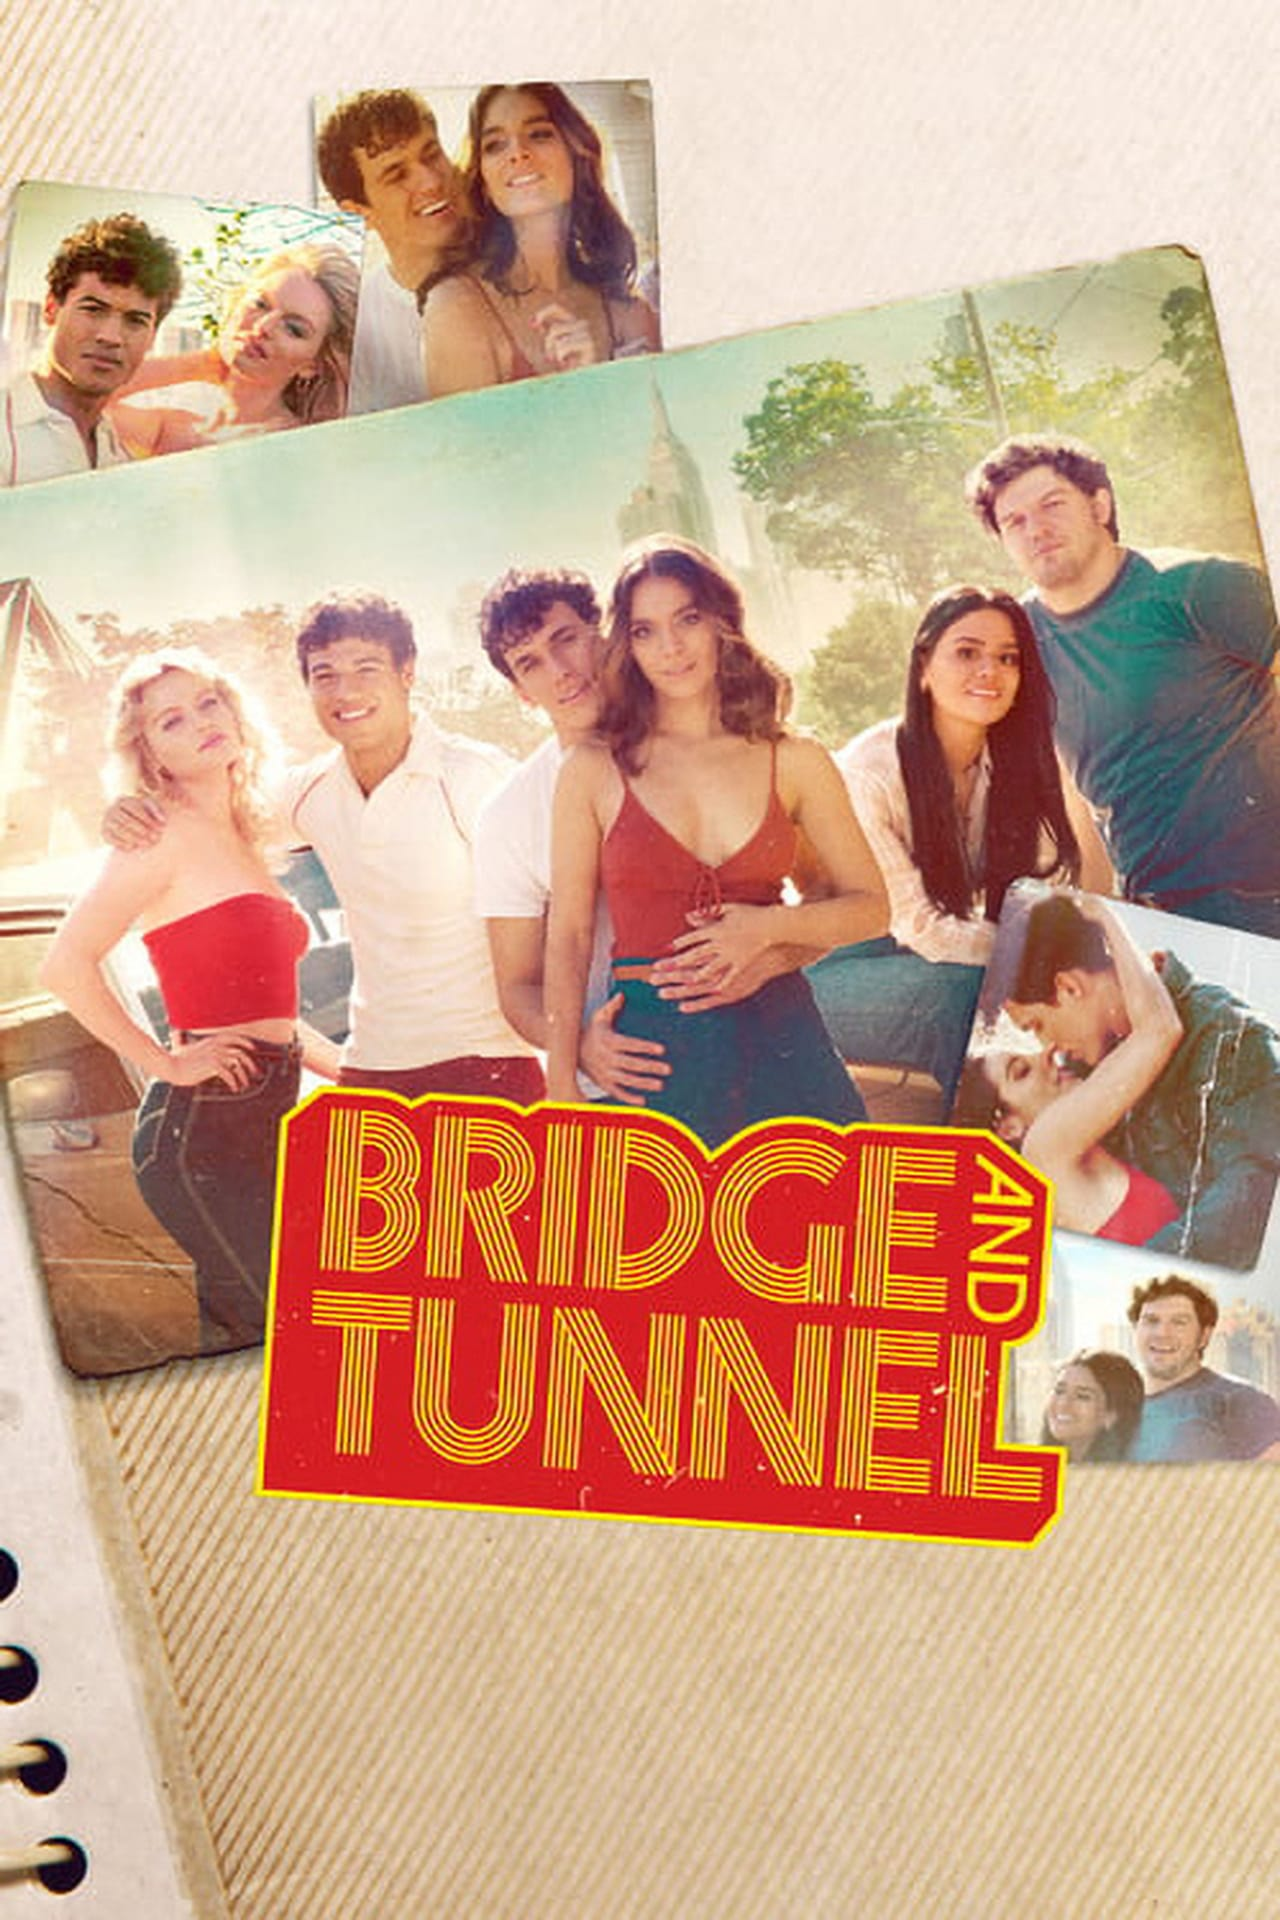 Bridge and Tunnel (season 1)